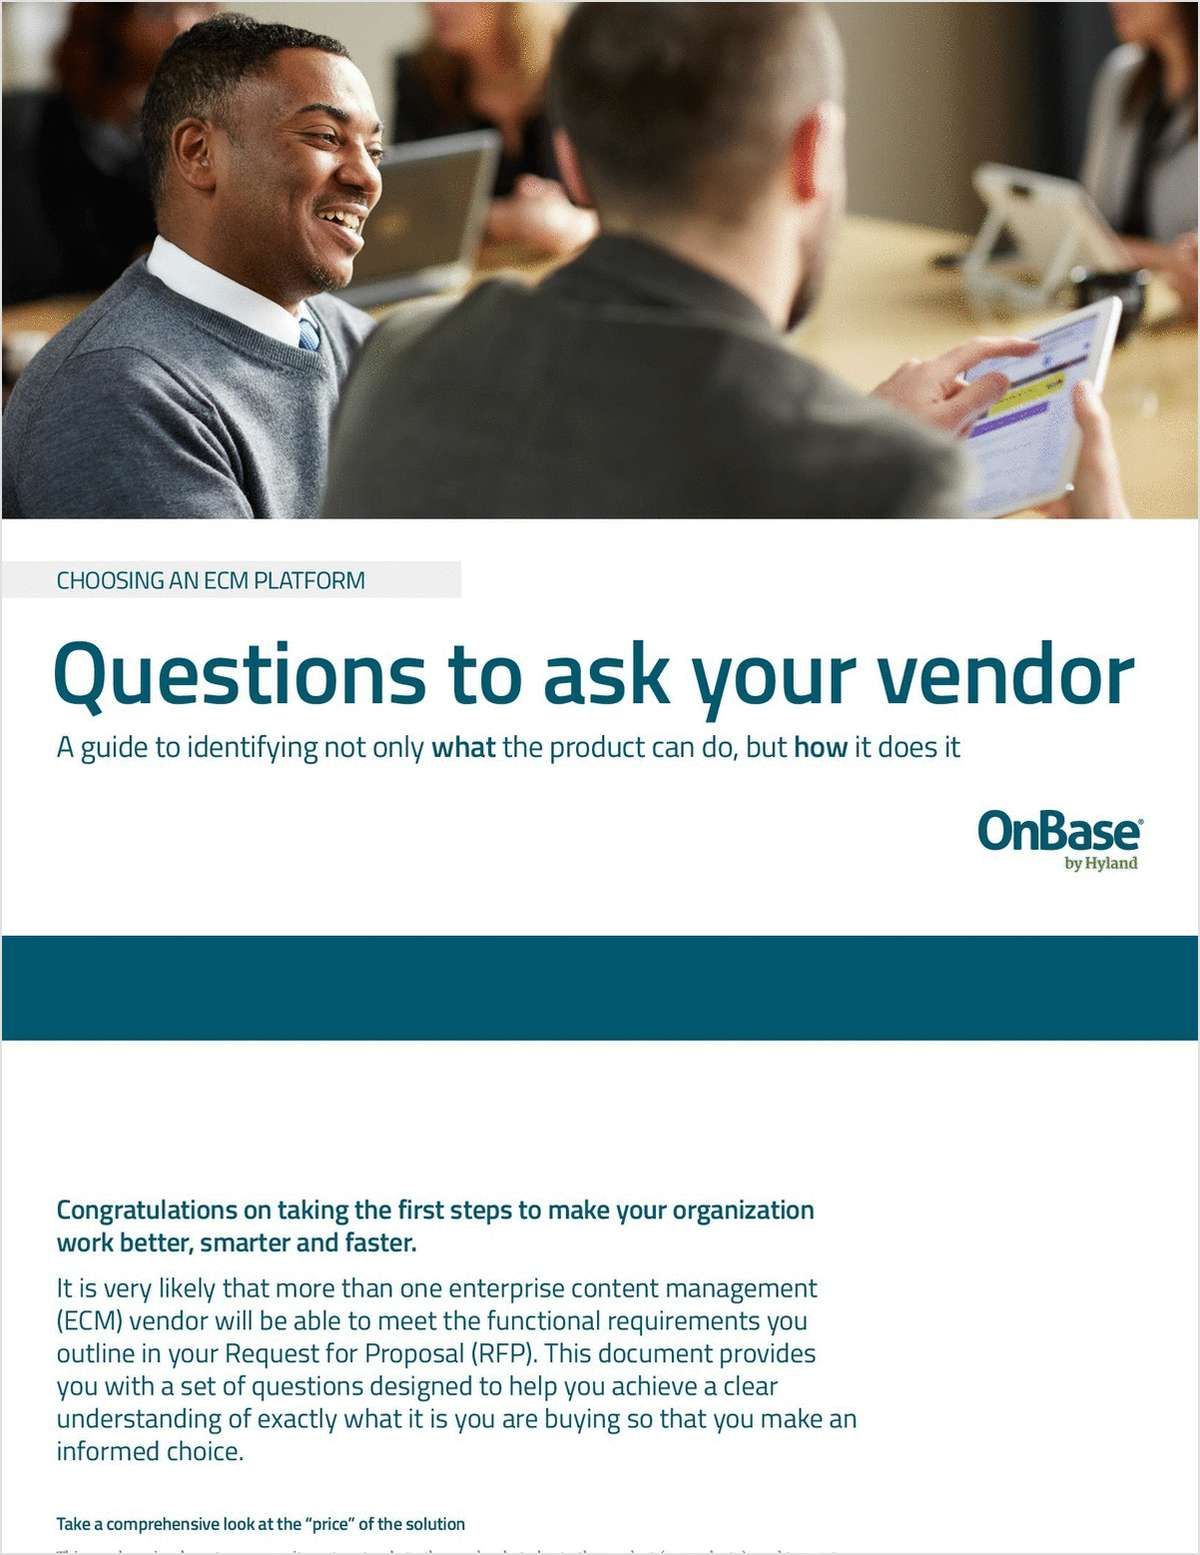 Questions to ask your vendor